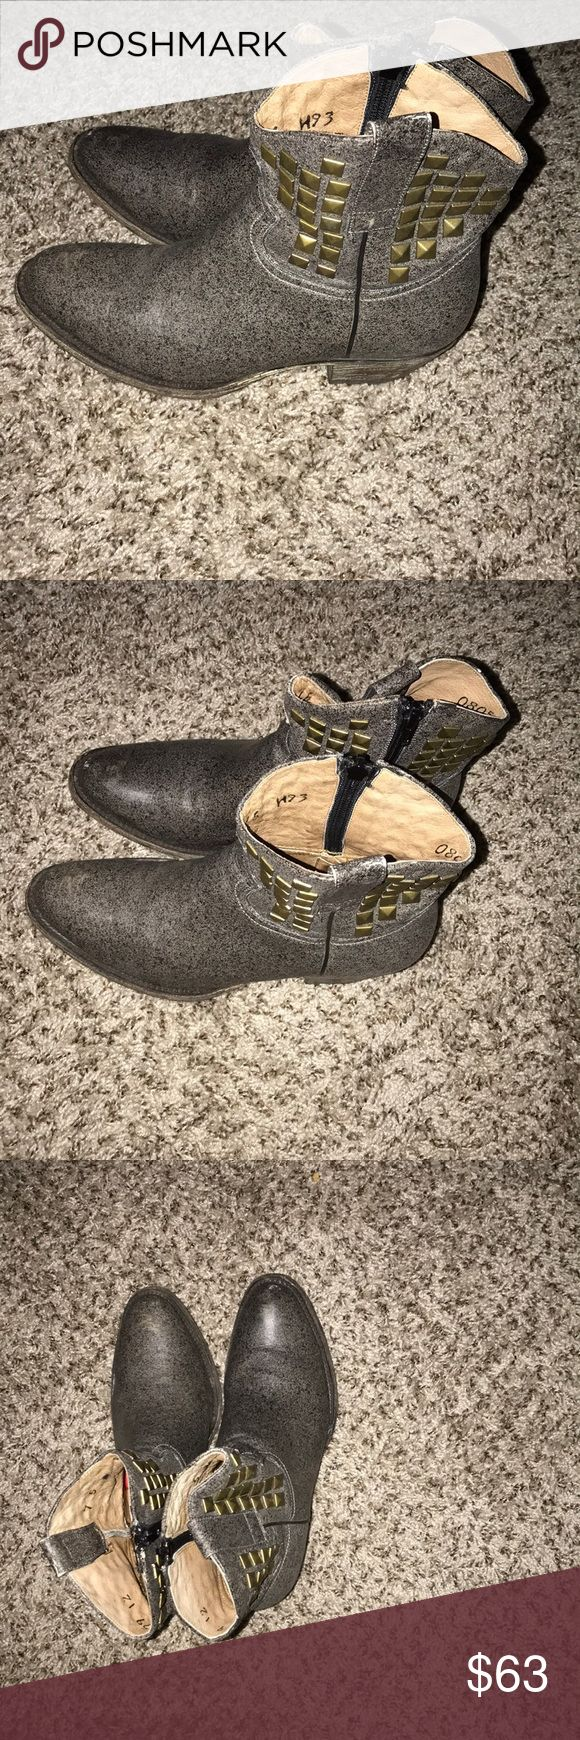 Black Rooster Shaw Gray Leather Wester Boots . Black Rooster Shaw Gray Leather Wester Boots . Size 7.5 Made in Mexico.. Preowned Smoke Free Home , They are still in great shape Black Rooster ( Made In Mexico Shoes Ankle Boots & Booties